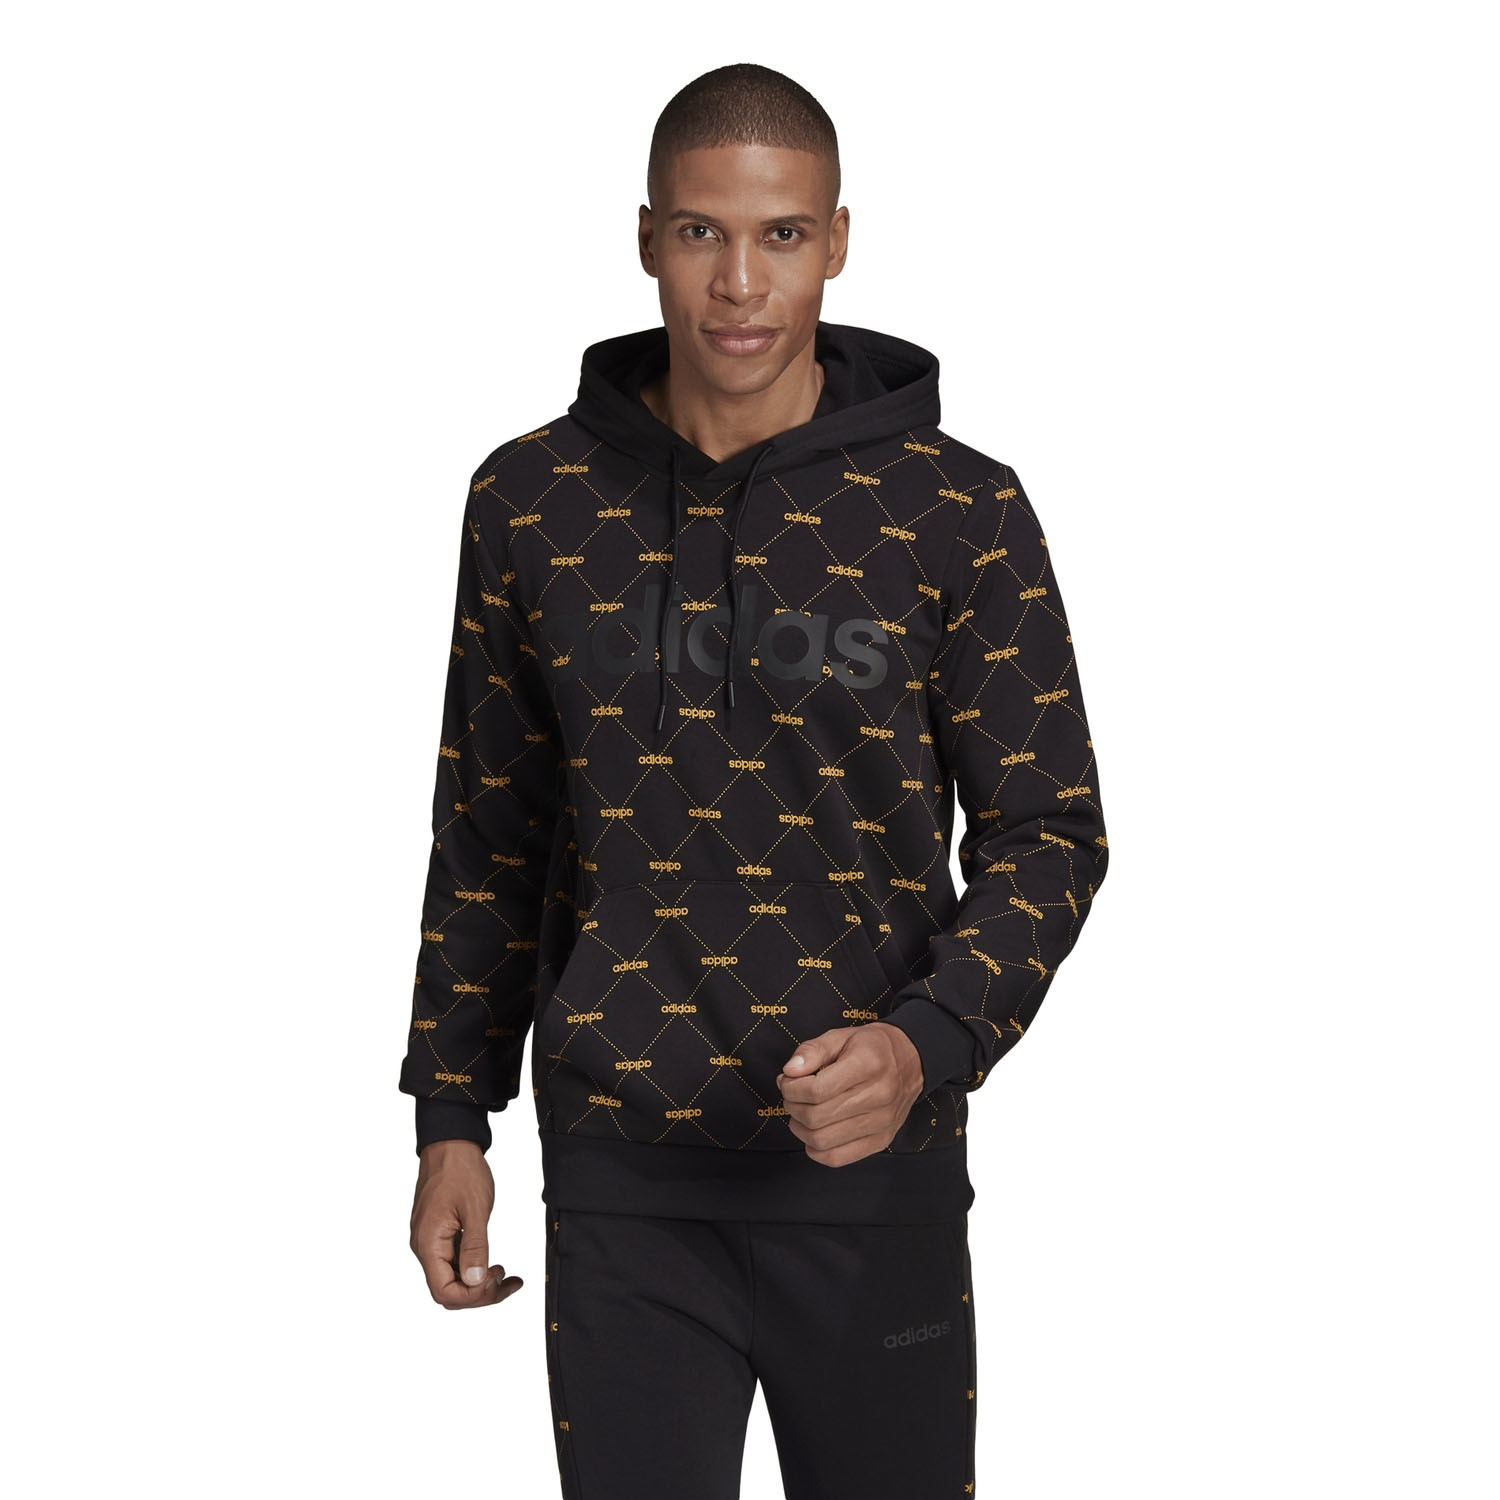 Adidas Canada 12 Days of Deals: Today, $50 Hoodies + Free